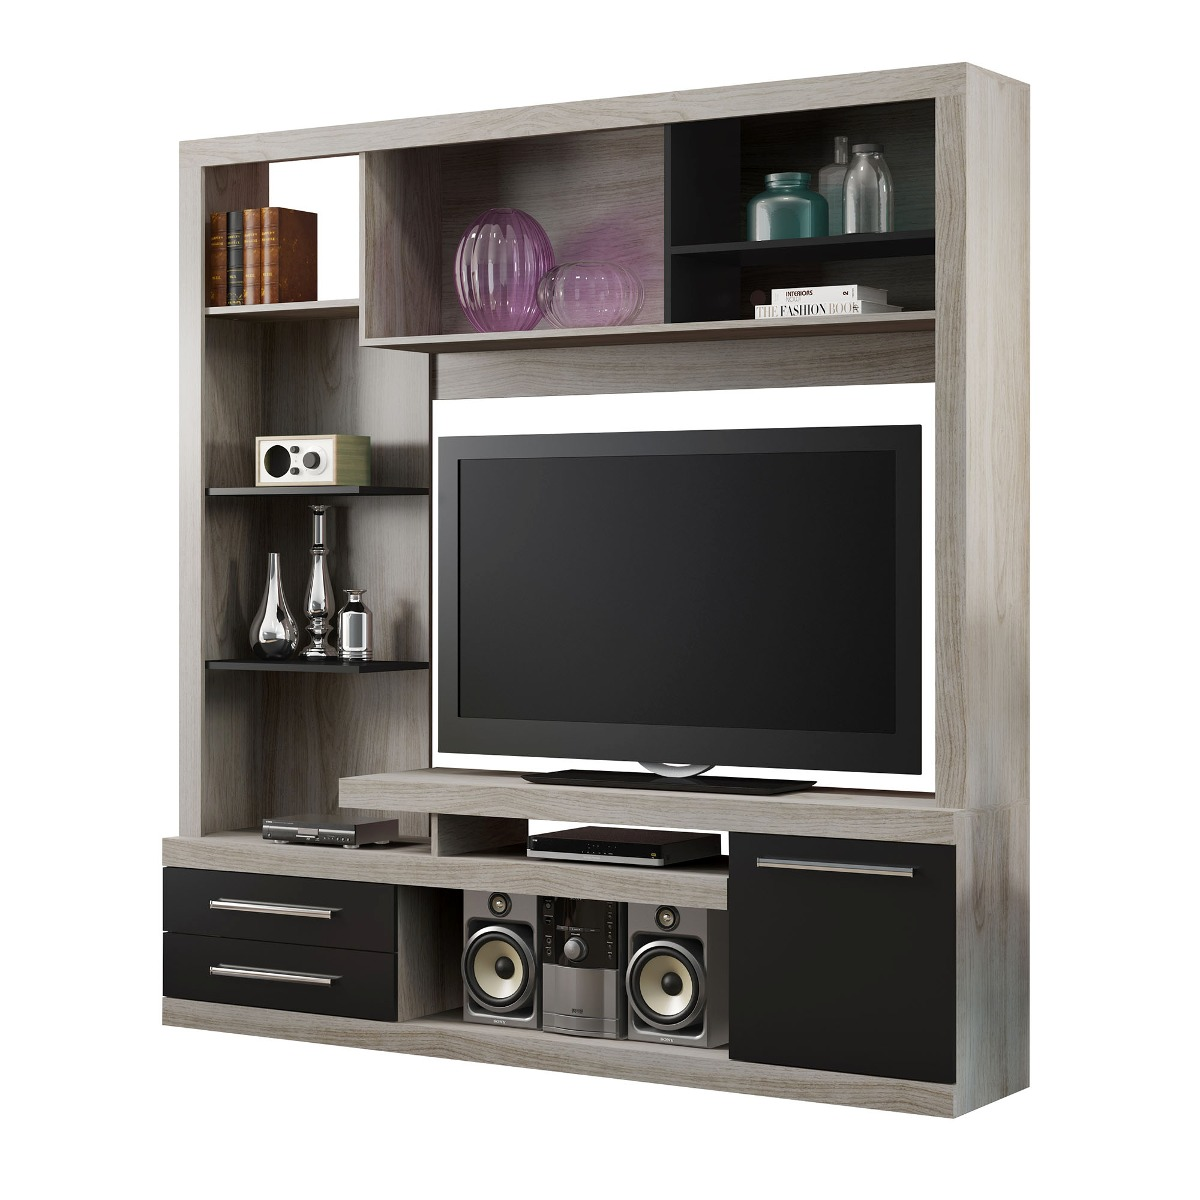 Muebles Para Tv Esquineros Mueble Para Tv Home Rack Modelo 944 Rinnova 184 900